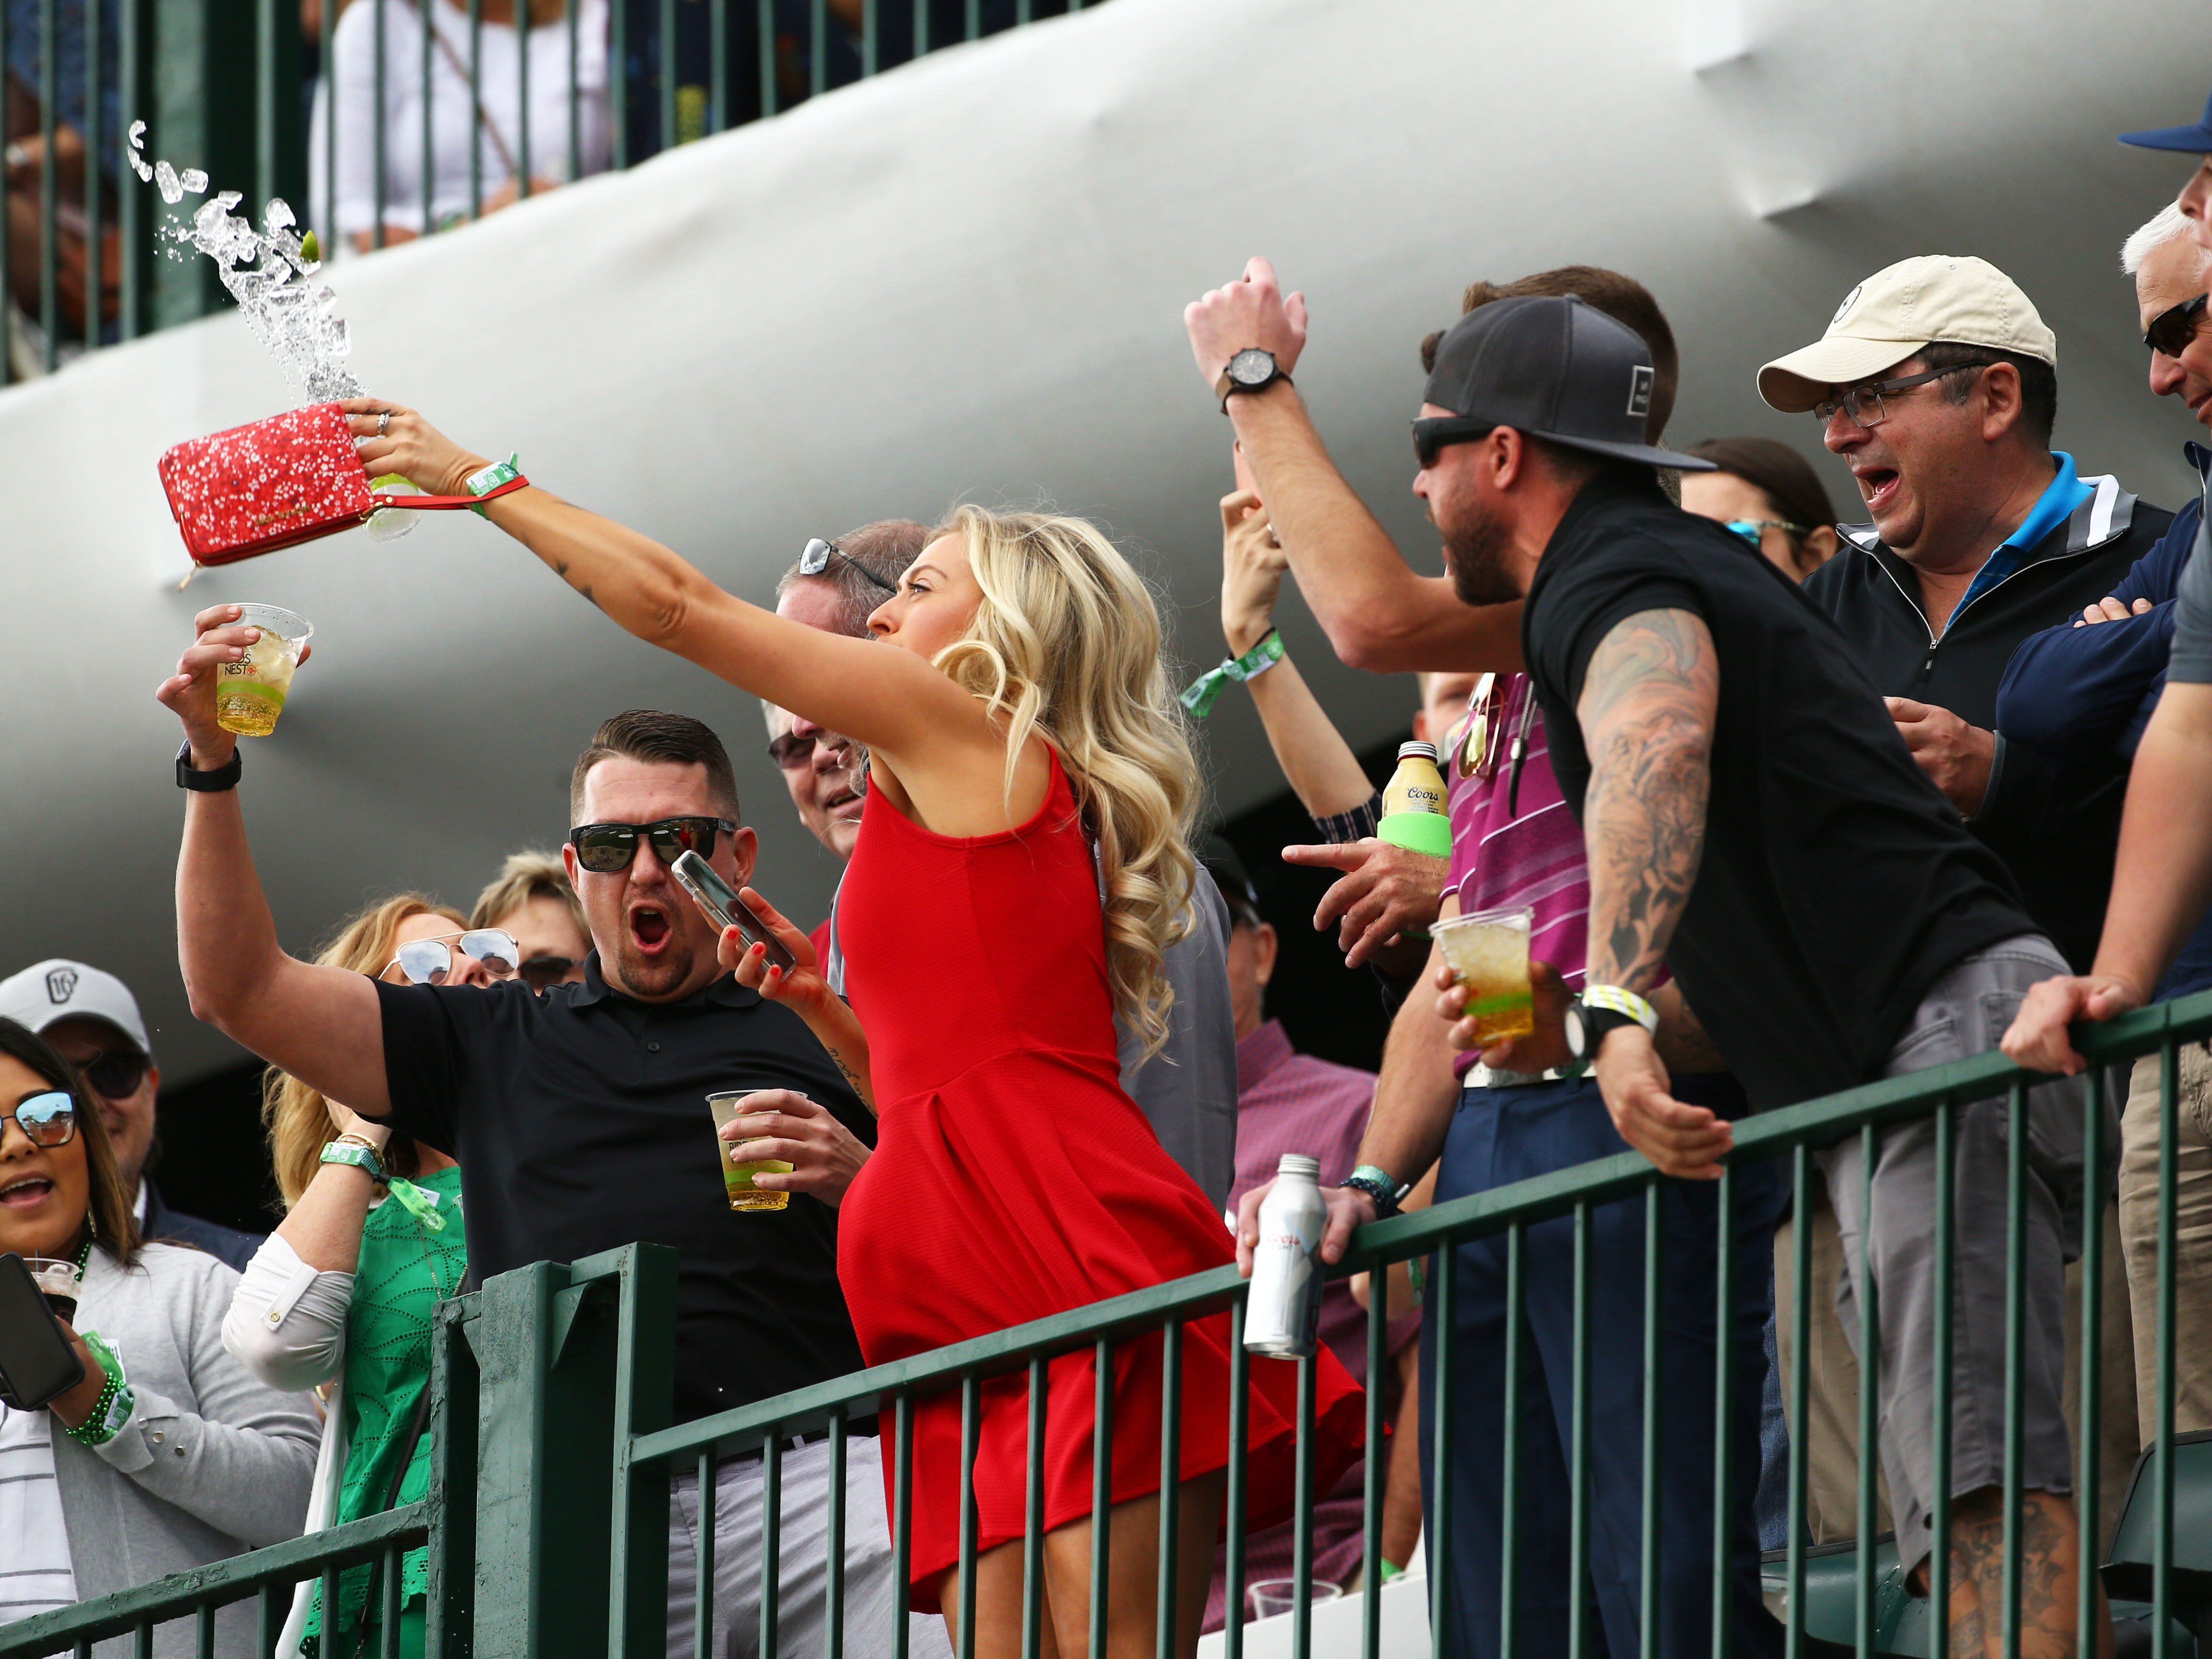 After downing a drink, a woman tosses the ice into the crowd below on the 16th hole during third round action on Feb. 2 during the Waste Management Phoenix Open at the TPC Scottsdale Stadium Course.